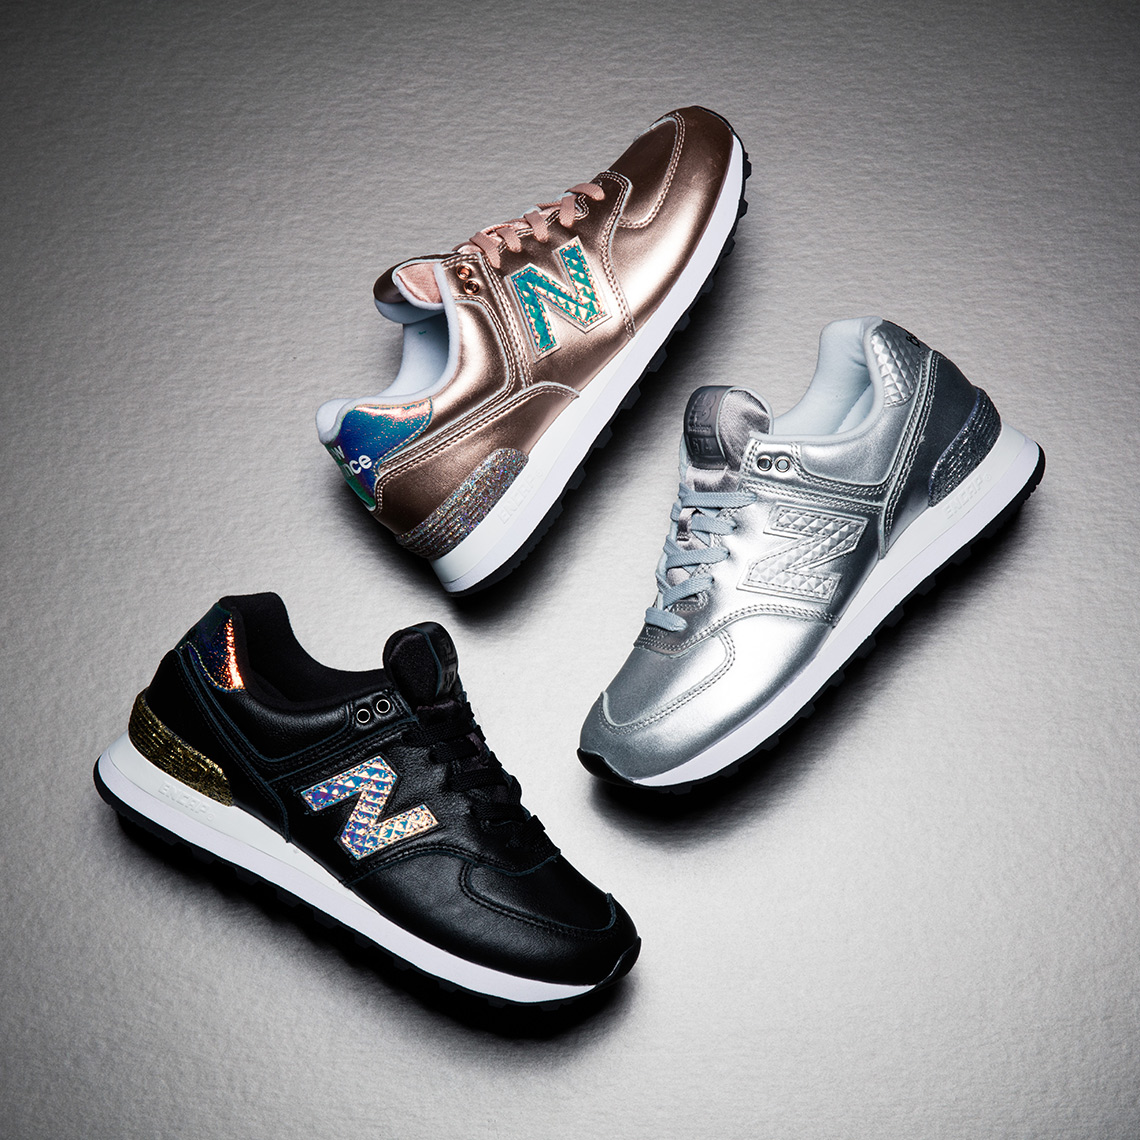 """37464e623a40 Get the New Balance 574 """"Glitter Pack"""" tomorrow on NewBalance.com and  select retailers."""